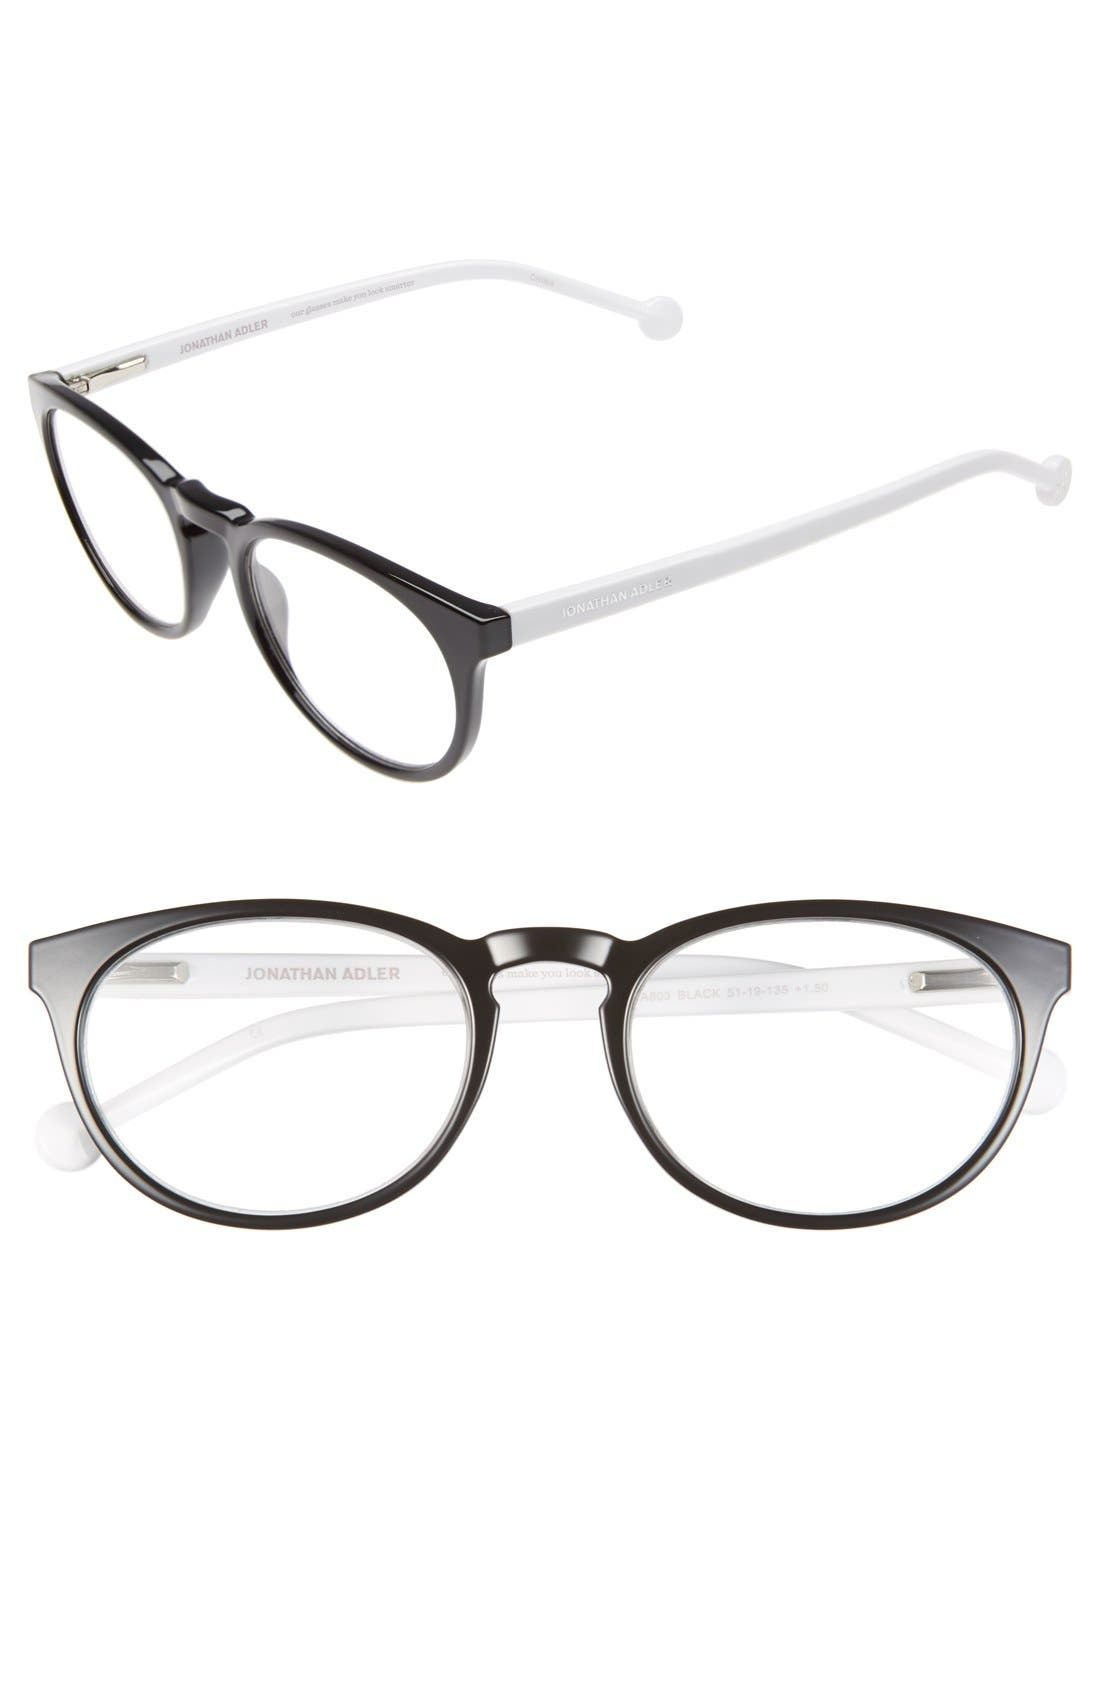 '803' 51mm Reading Glasses,                         Main,                         color, 001